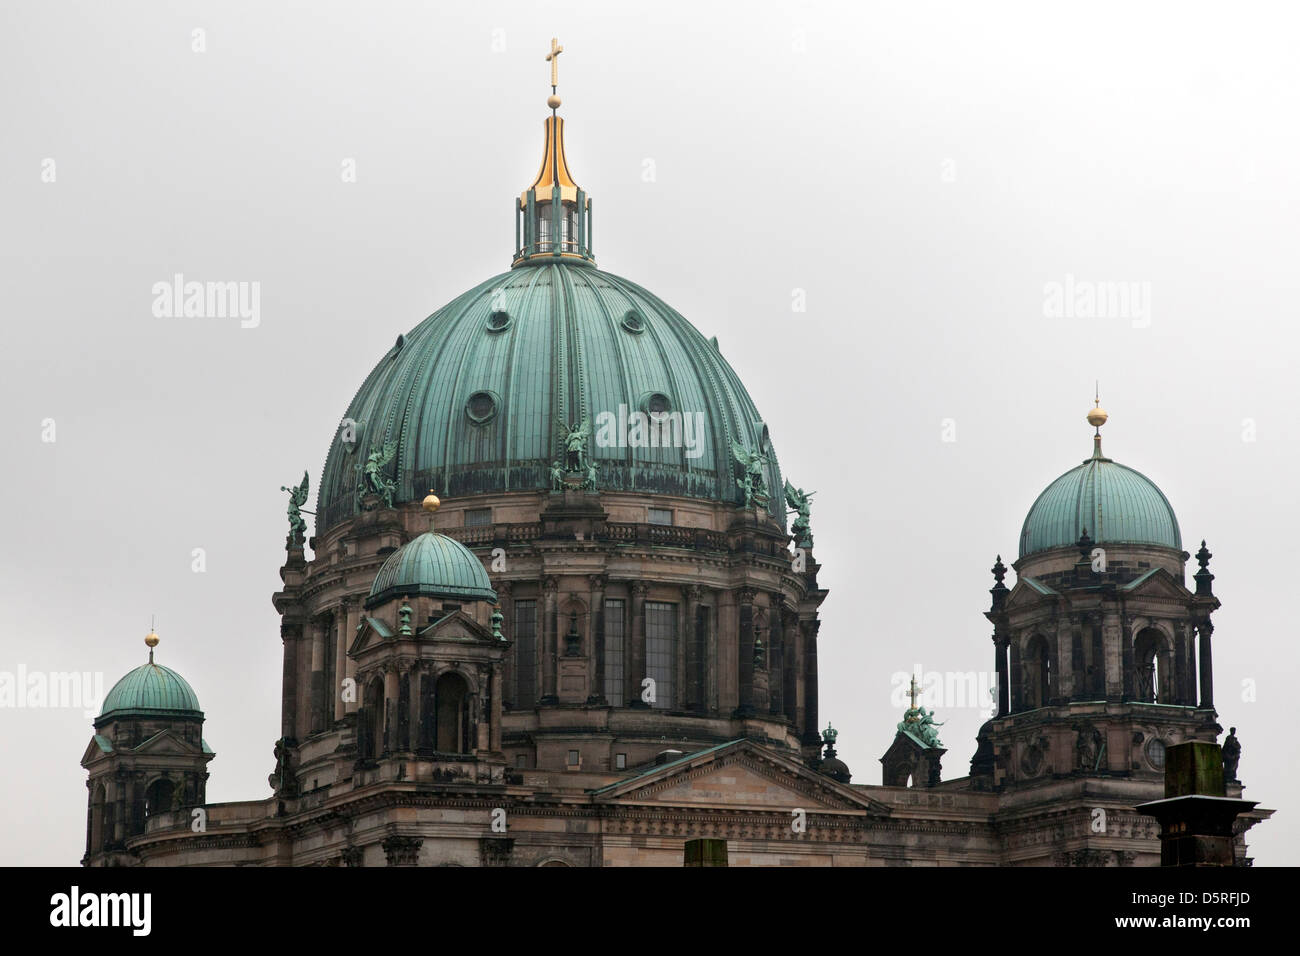 Berliner Dom, Berlin, Germany - Stock Image